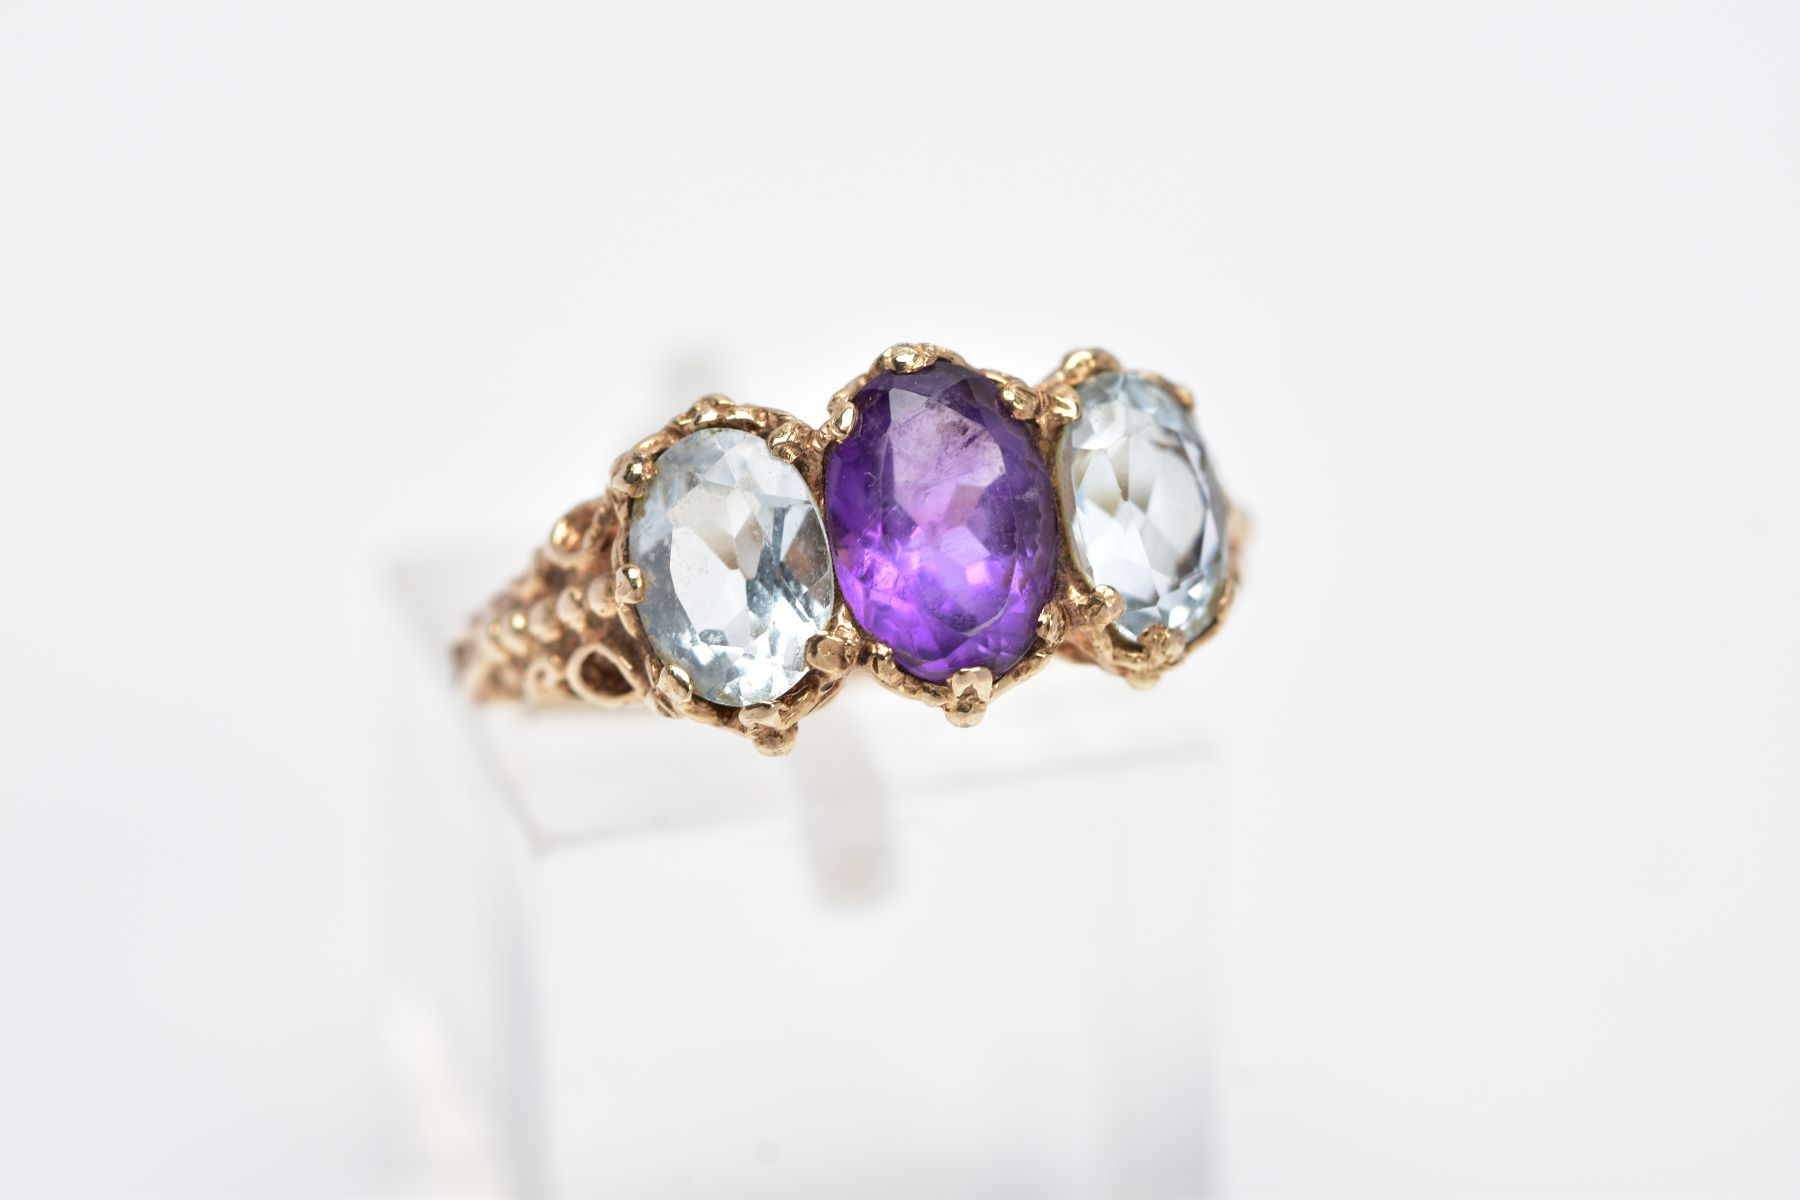 A 9CT GOLD THREE STONE RING, centring on an oval cut amethyst, flanked with two oval cut - Image 4 of 4